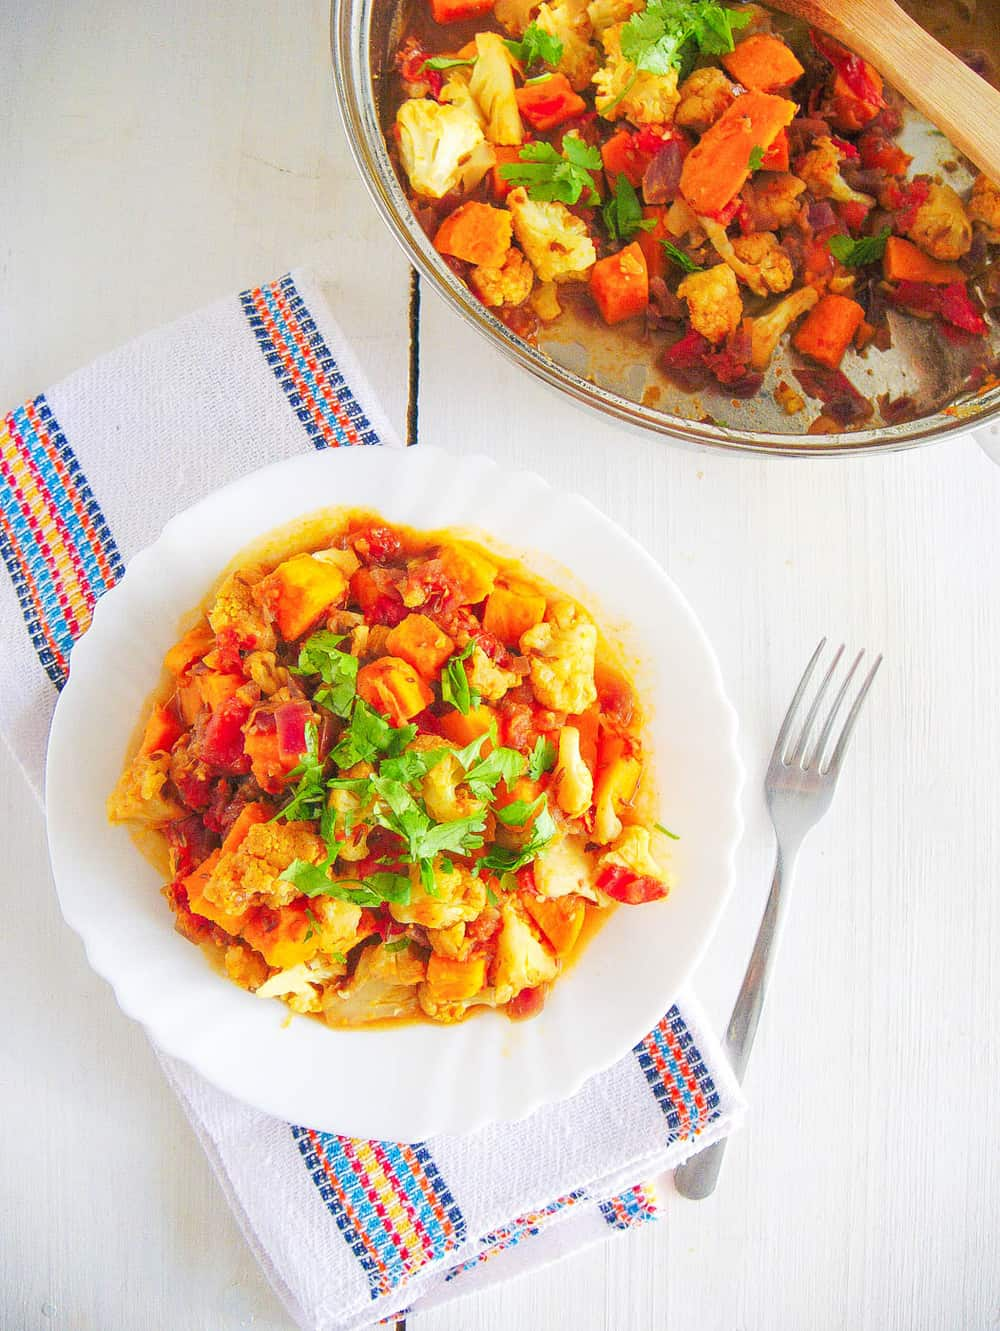 sweet potato cauliflower curry with sweet potatoes topped with cilantro, served on a white plate